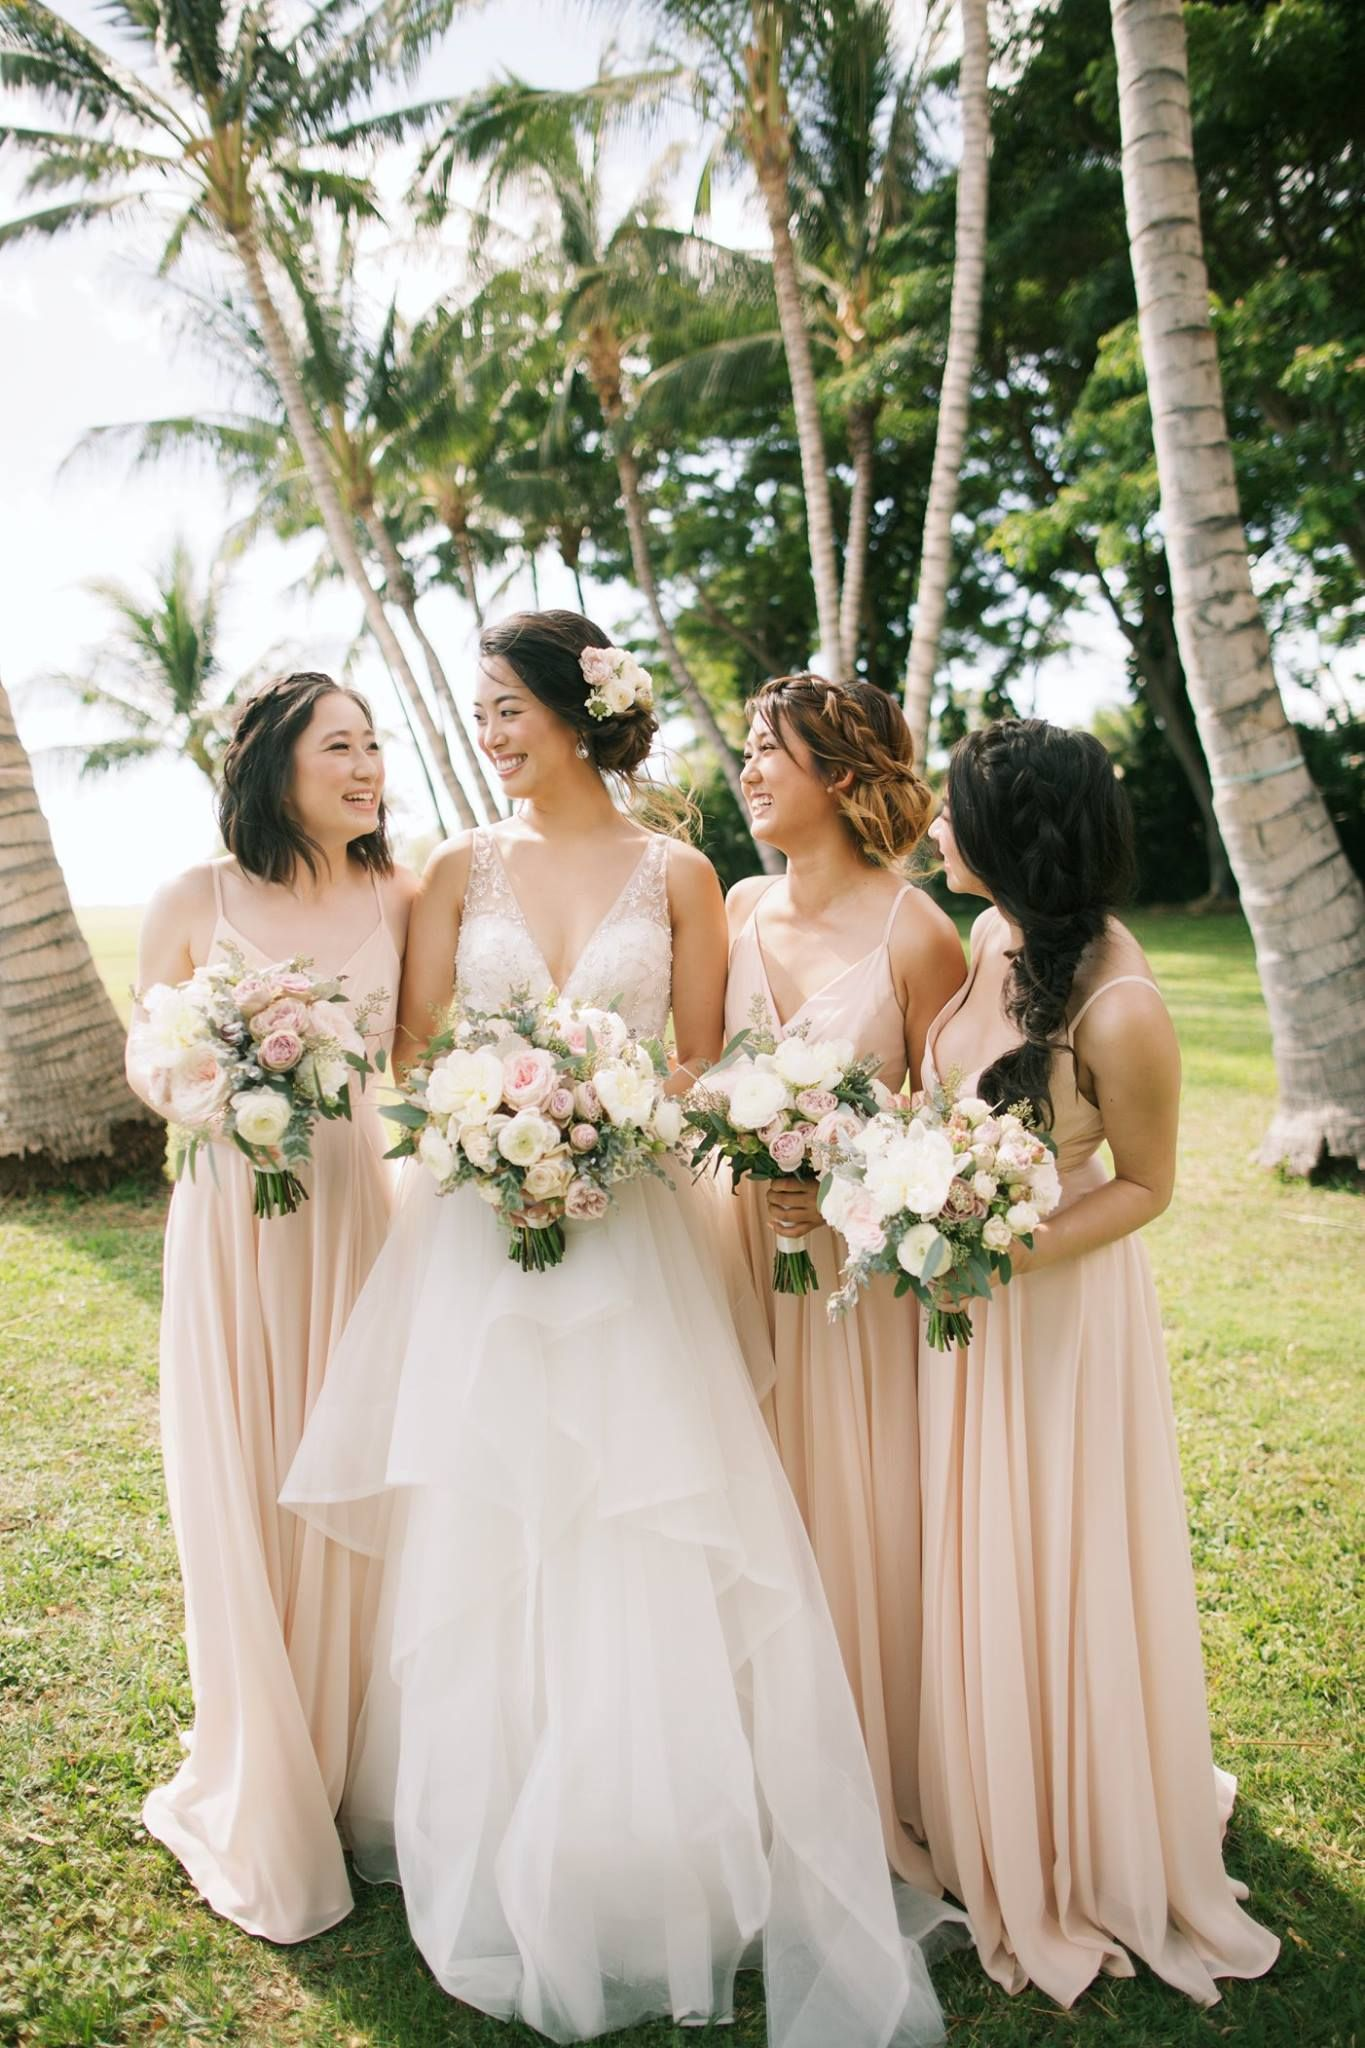 Pale pink bridesmaids dresses and bouquets bride tribe anna kim